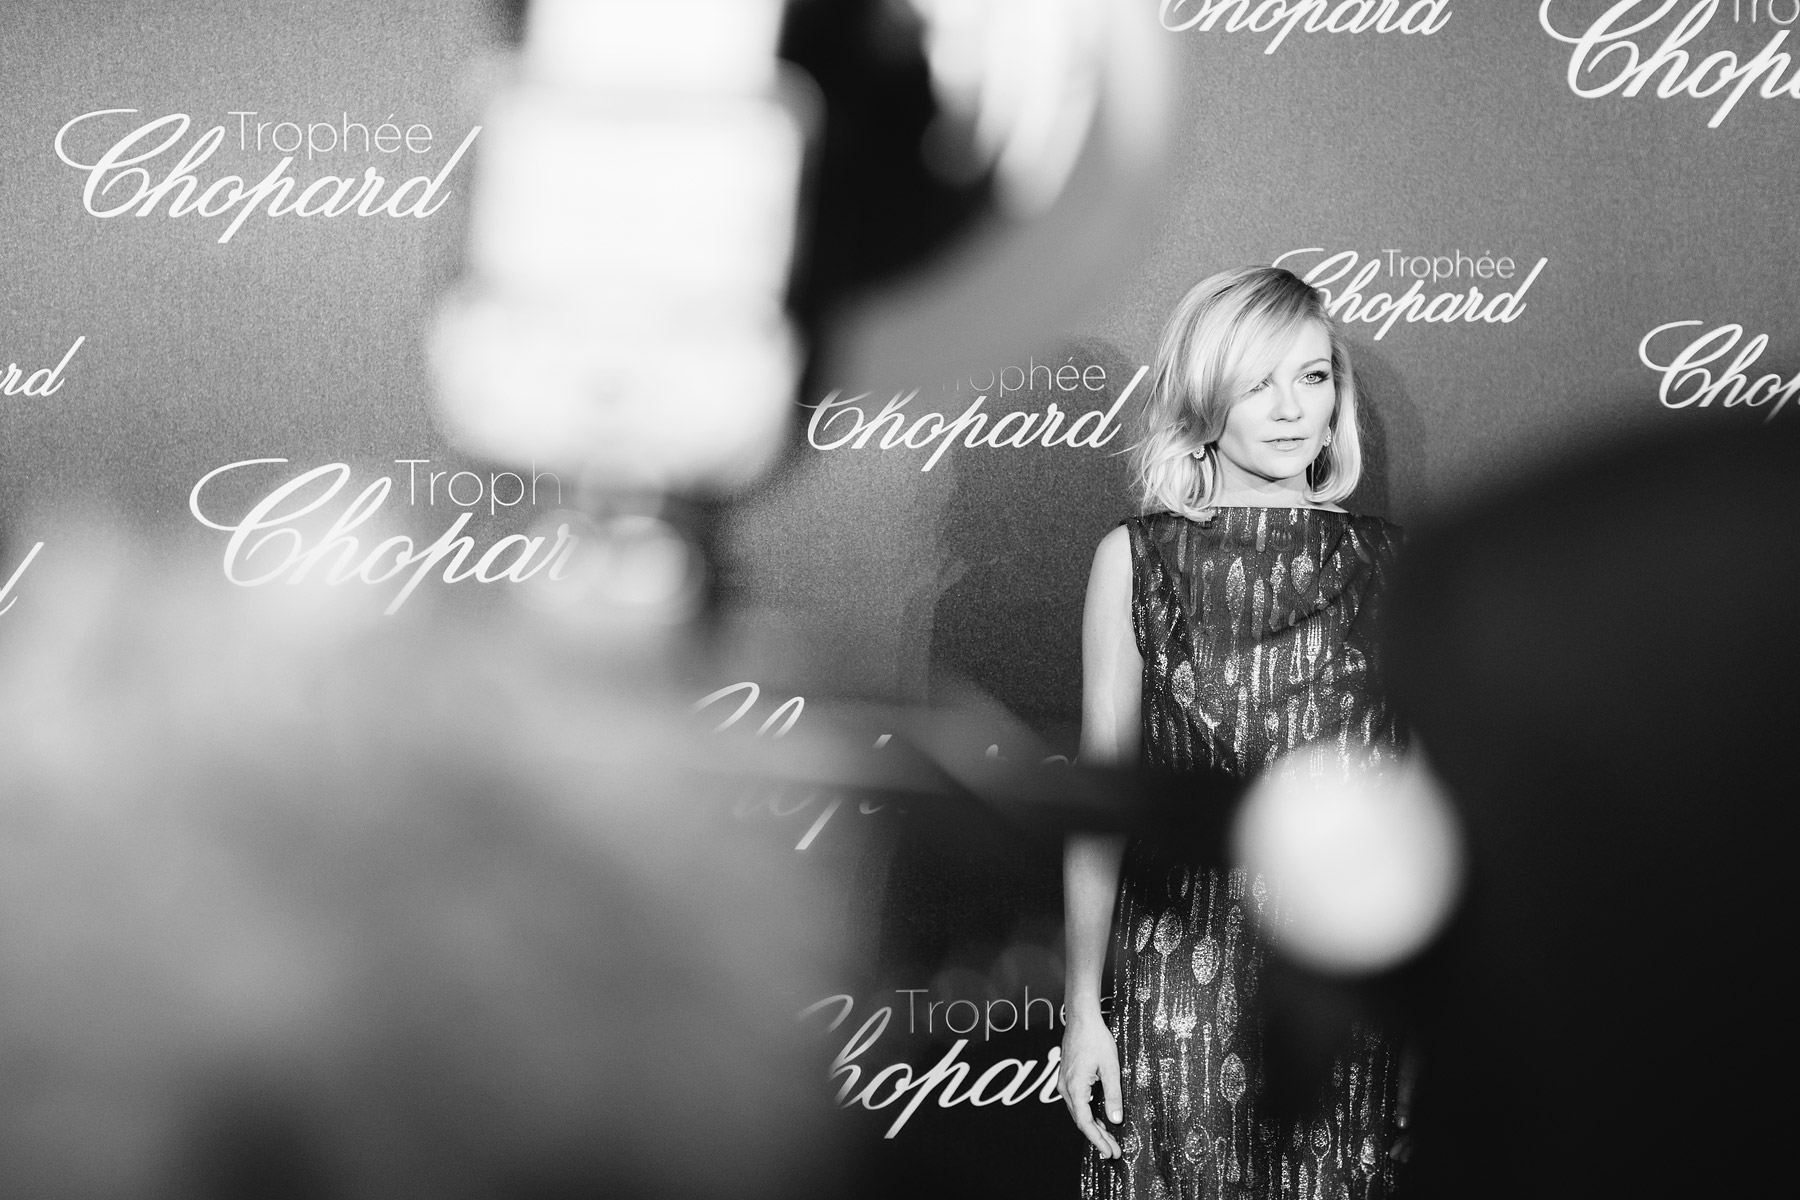 With Chopard in Cannes